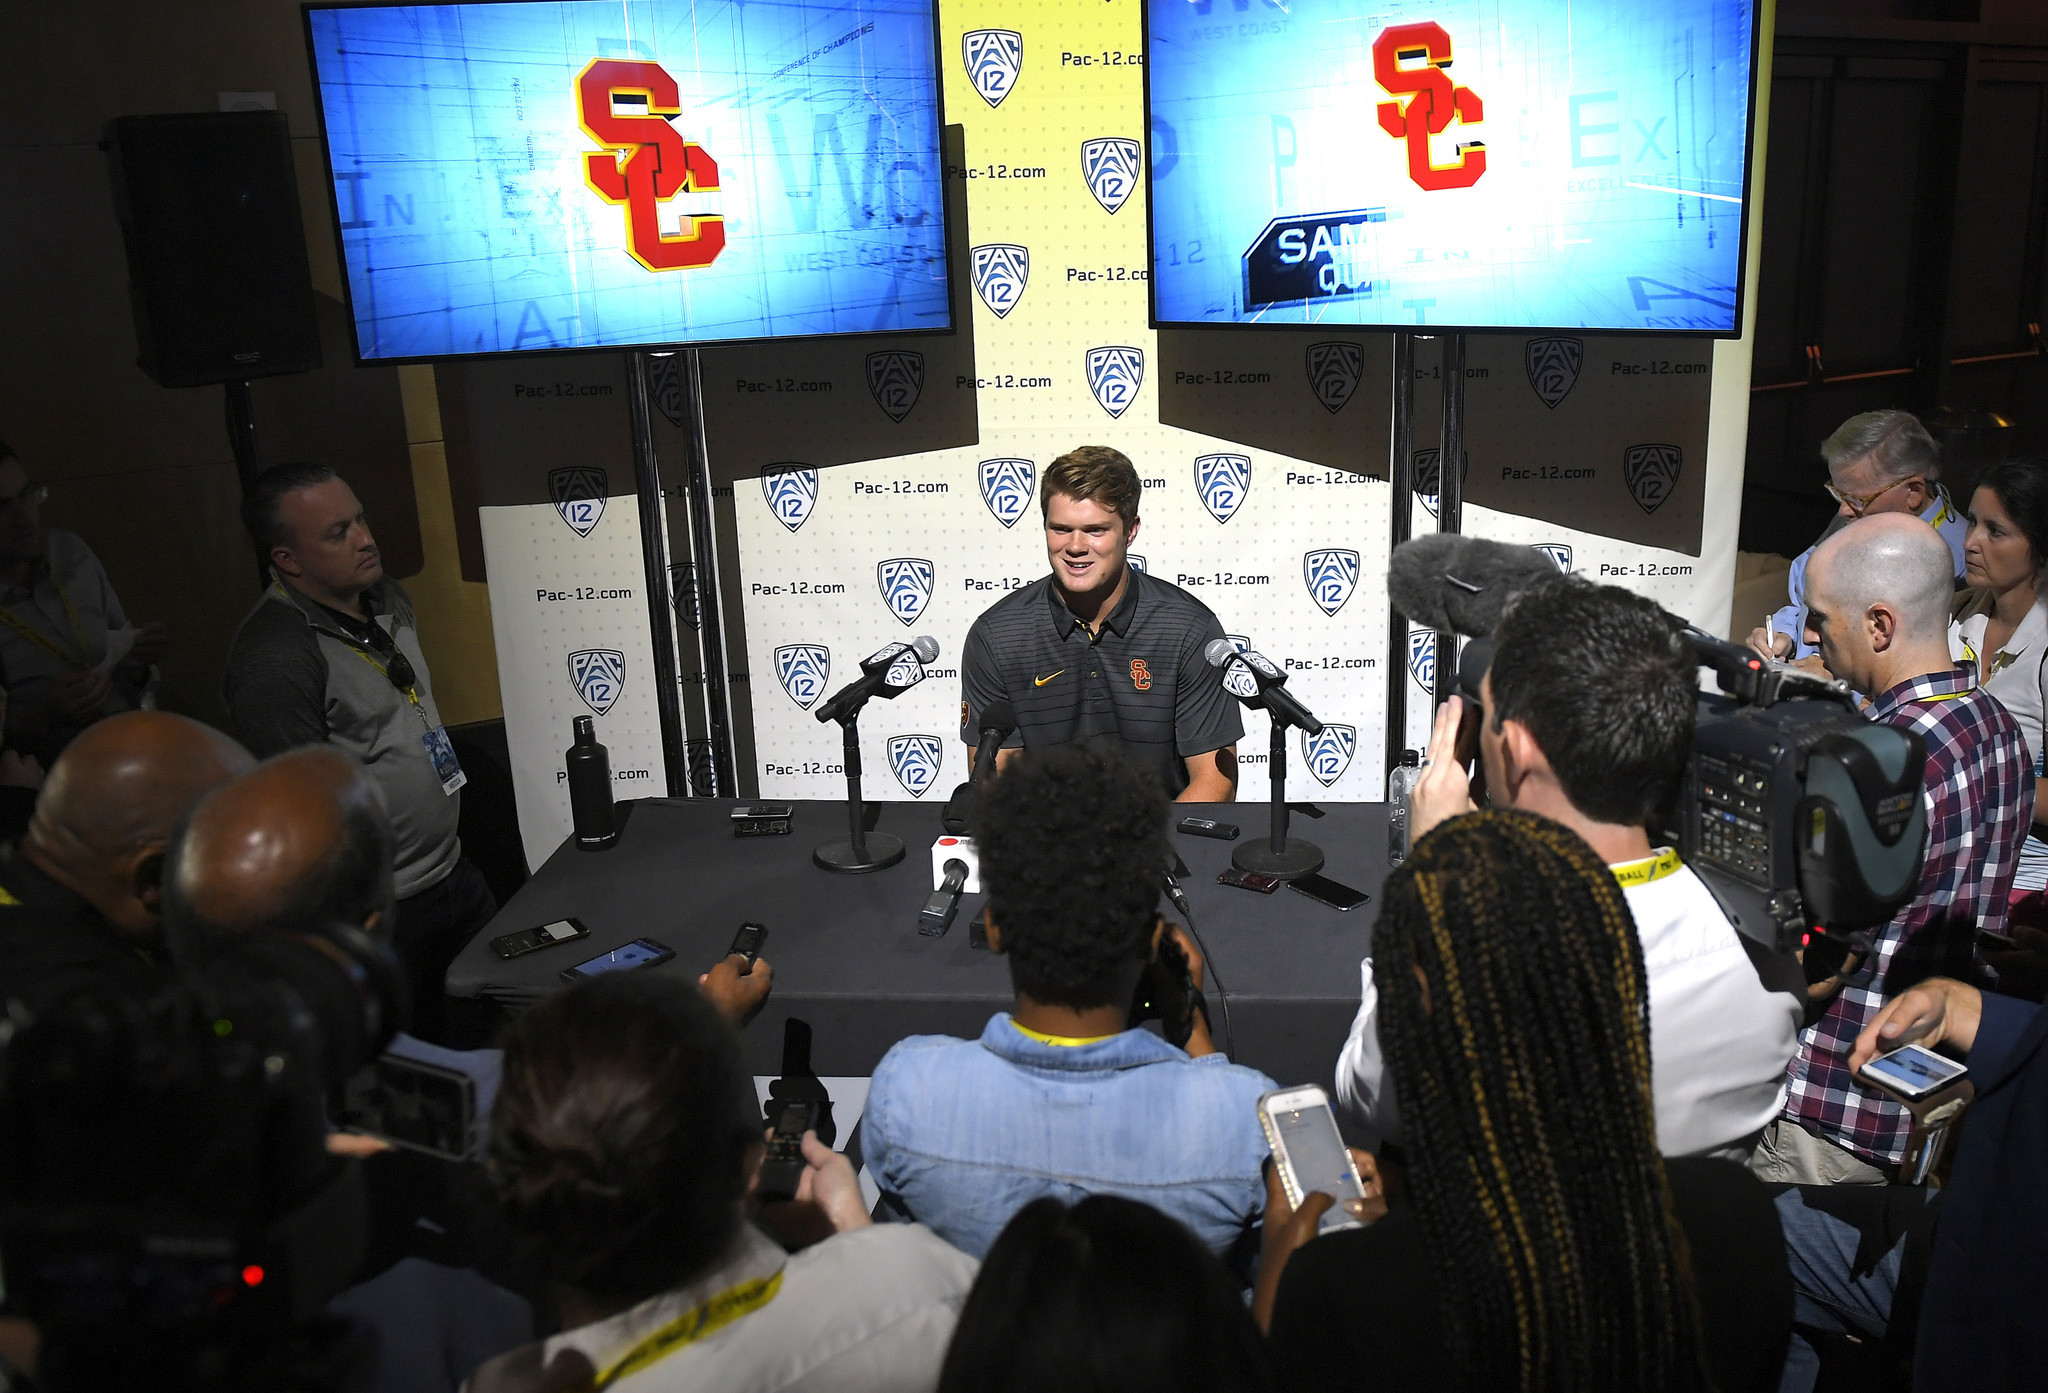 USC quarterback Sam Darnold speaks at Pac-12 media days in Hollywood.